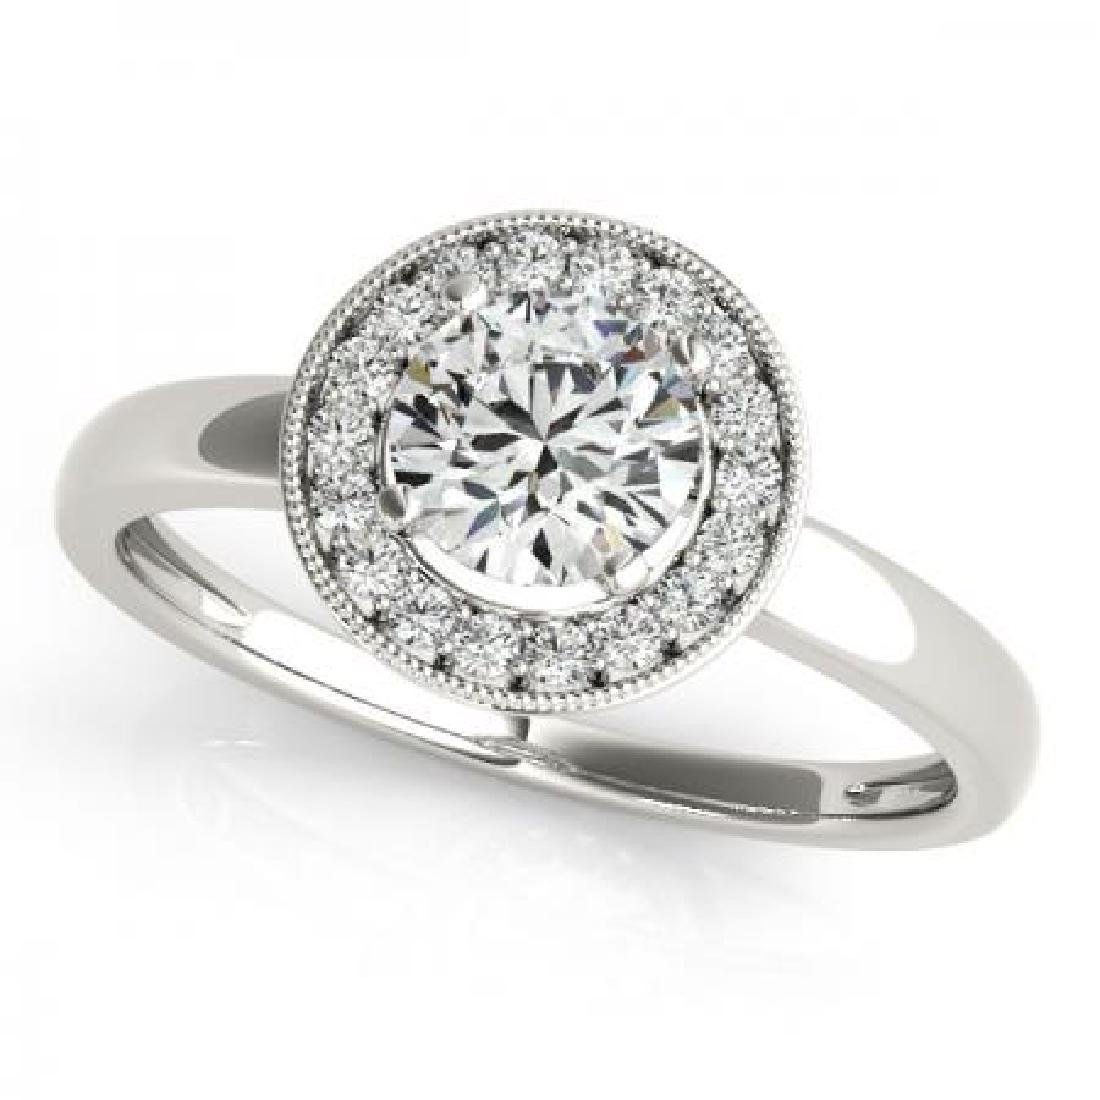 CERTIFIED PLATINUM 1.36 CT G-H/VS-SI1 DIAMOND HALO ENGA